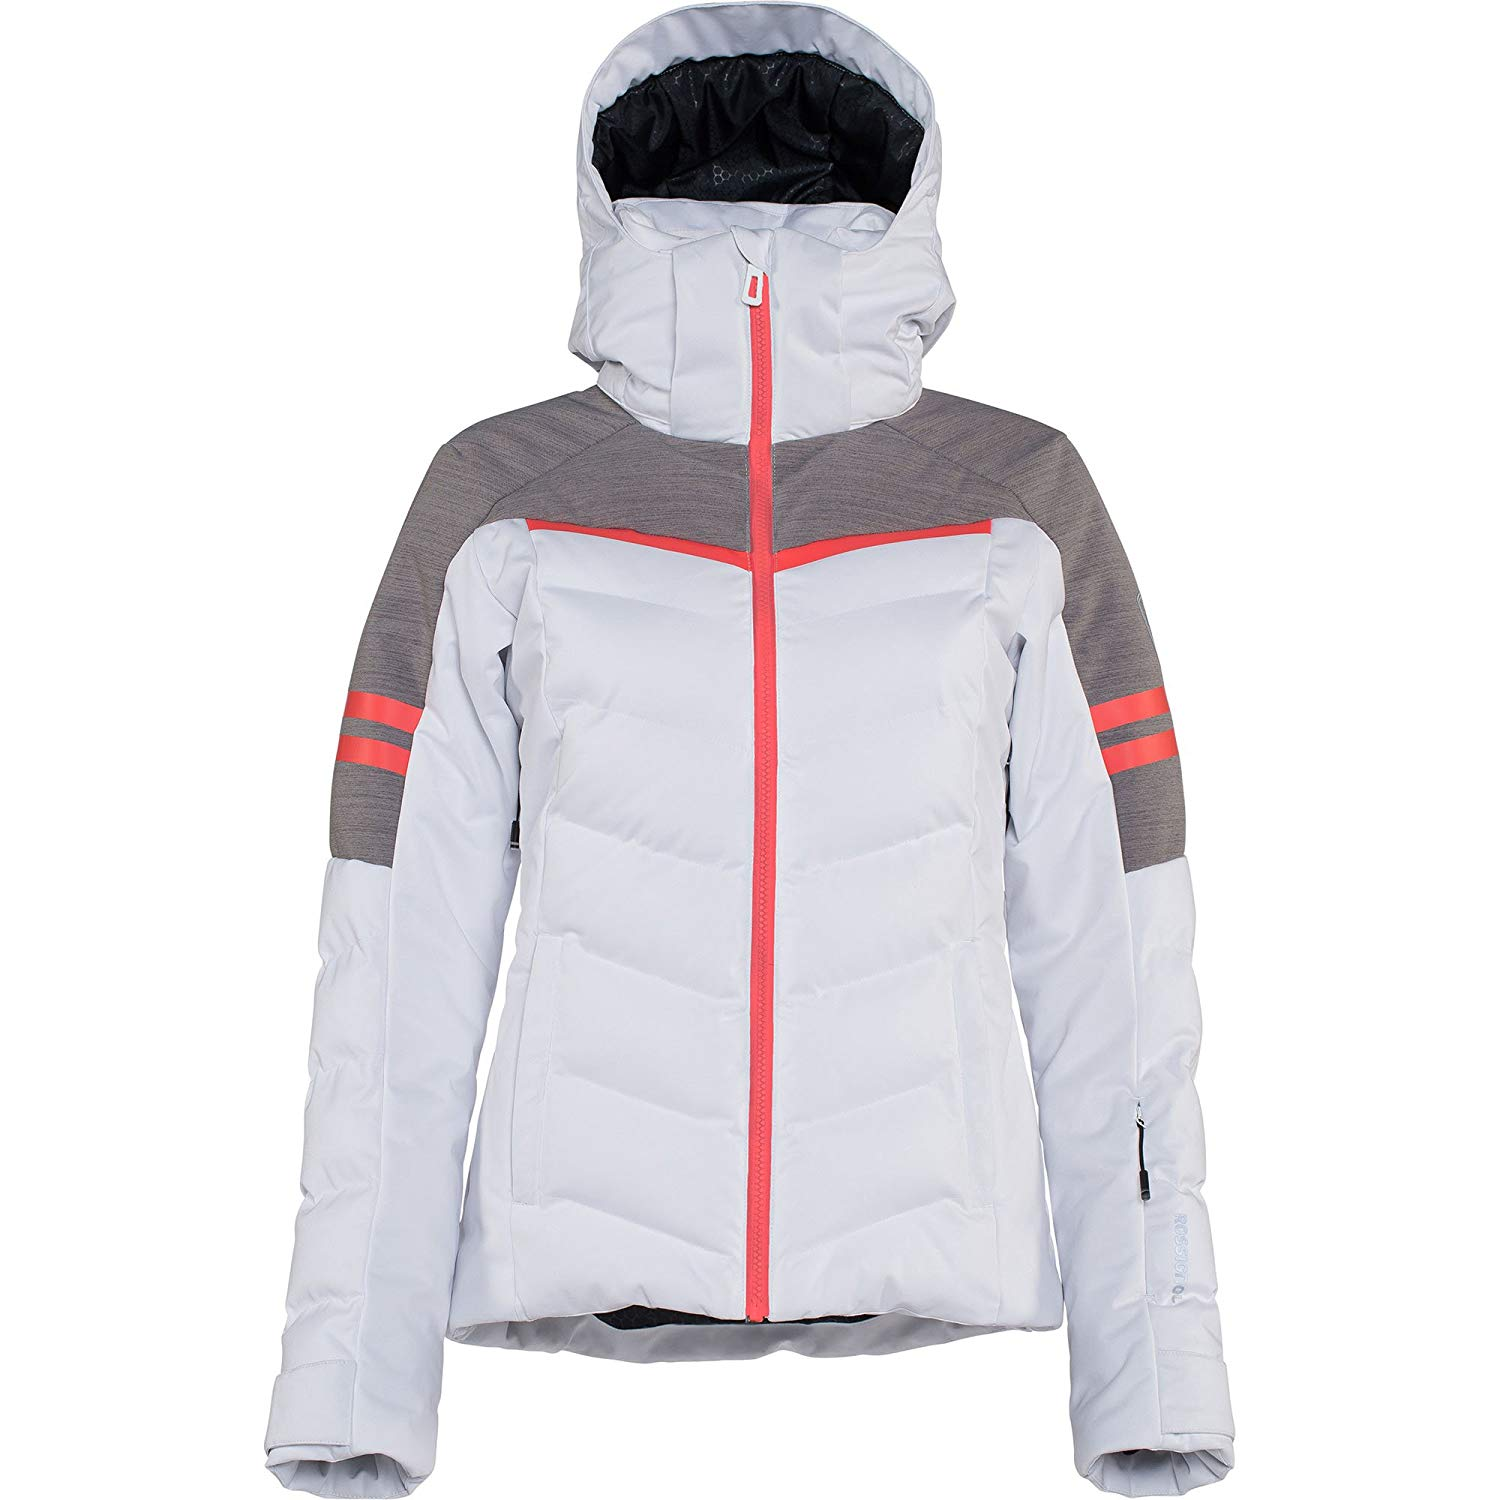 49b4c3a0b390e Cheap Descente Ski Jacket, find Descente Ski Jacket deals on line at ...